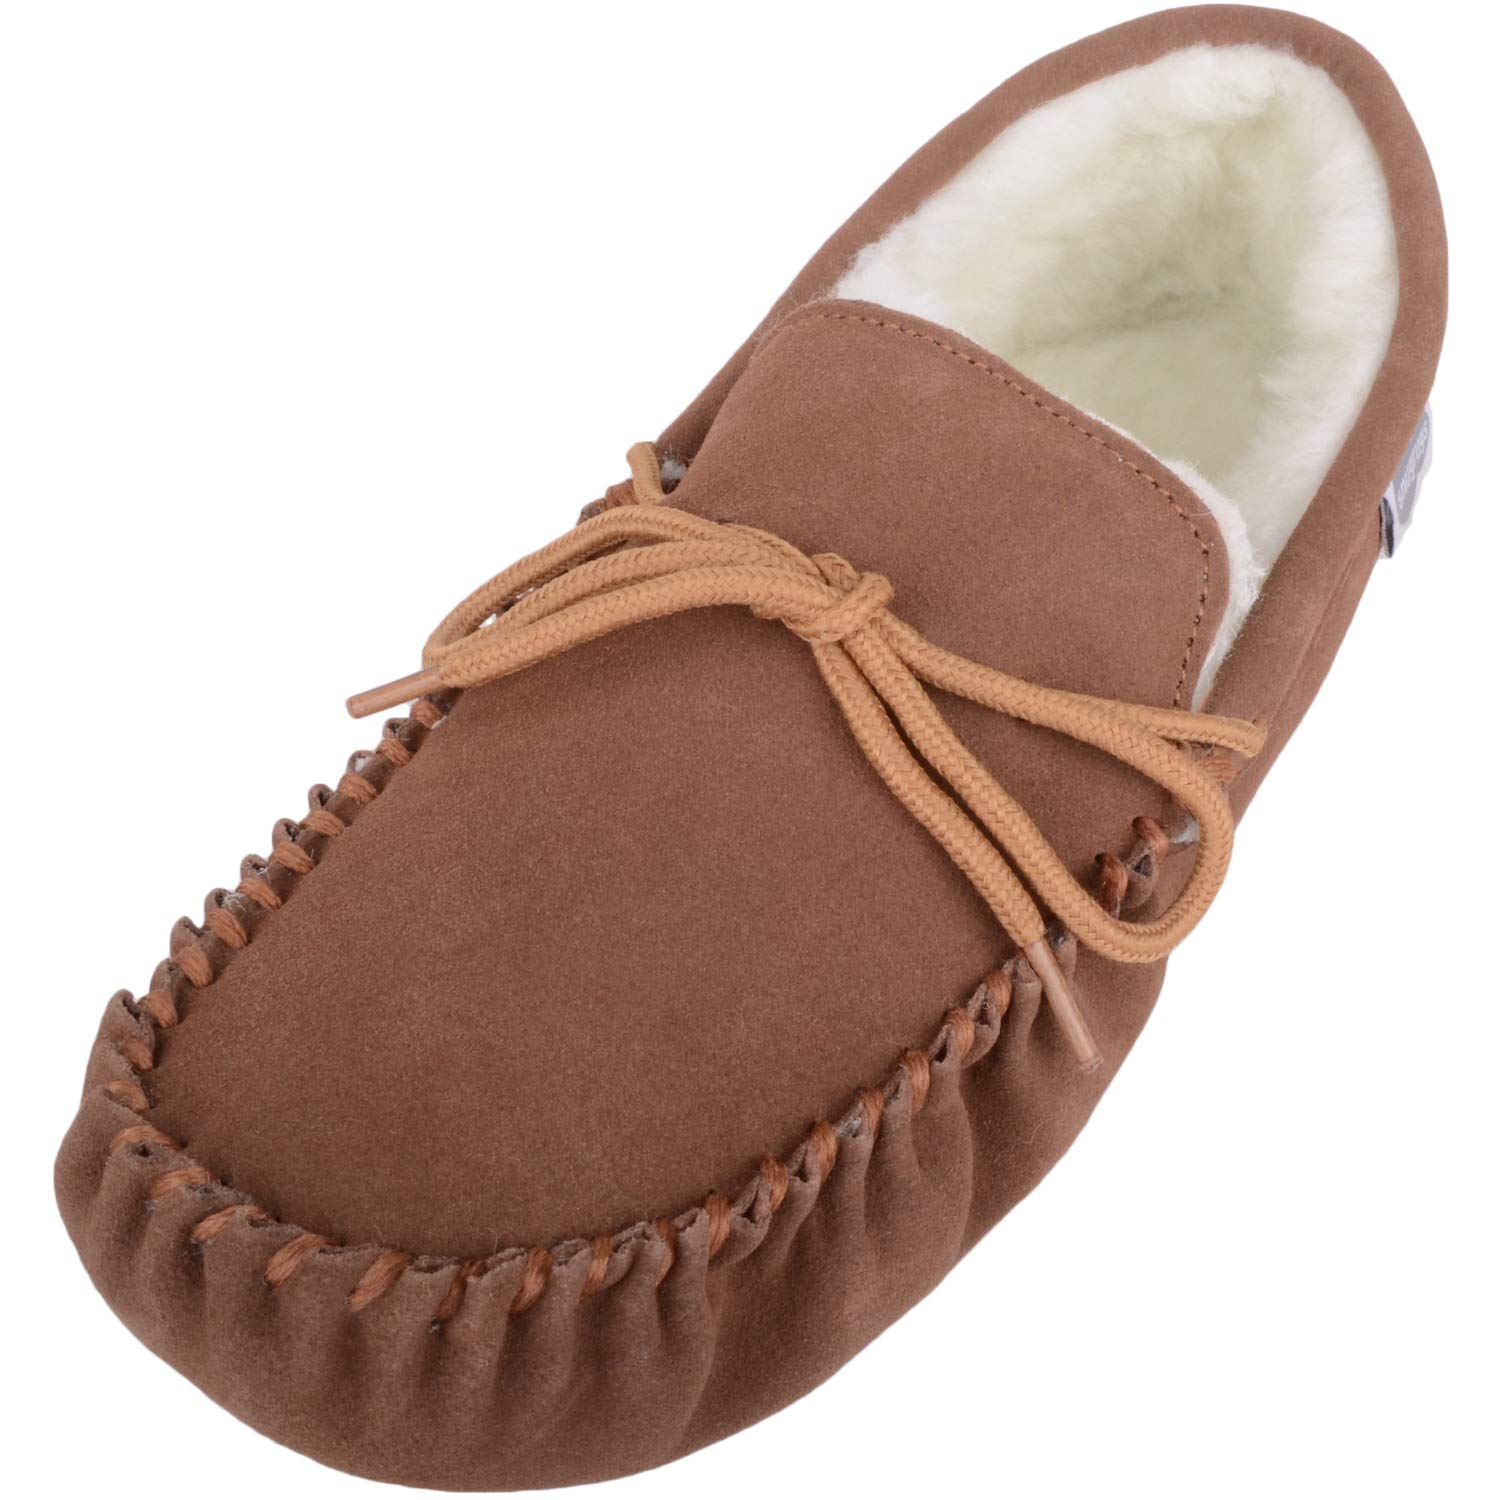 SNUGRUGS Men's Suede Sheepskin Moccasin Slippers with Soft Sole Light Brown US 10